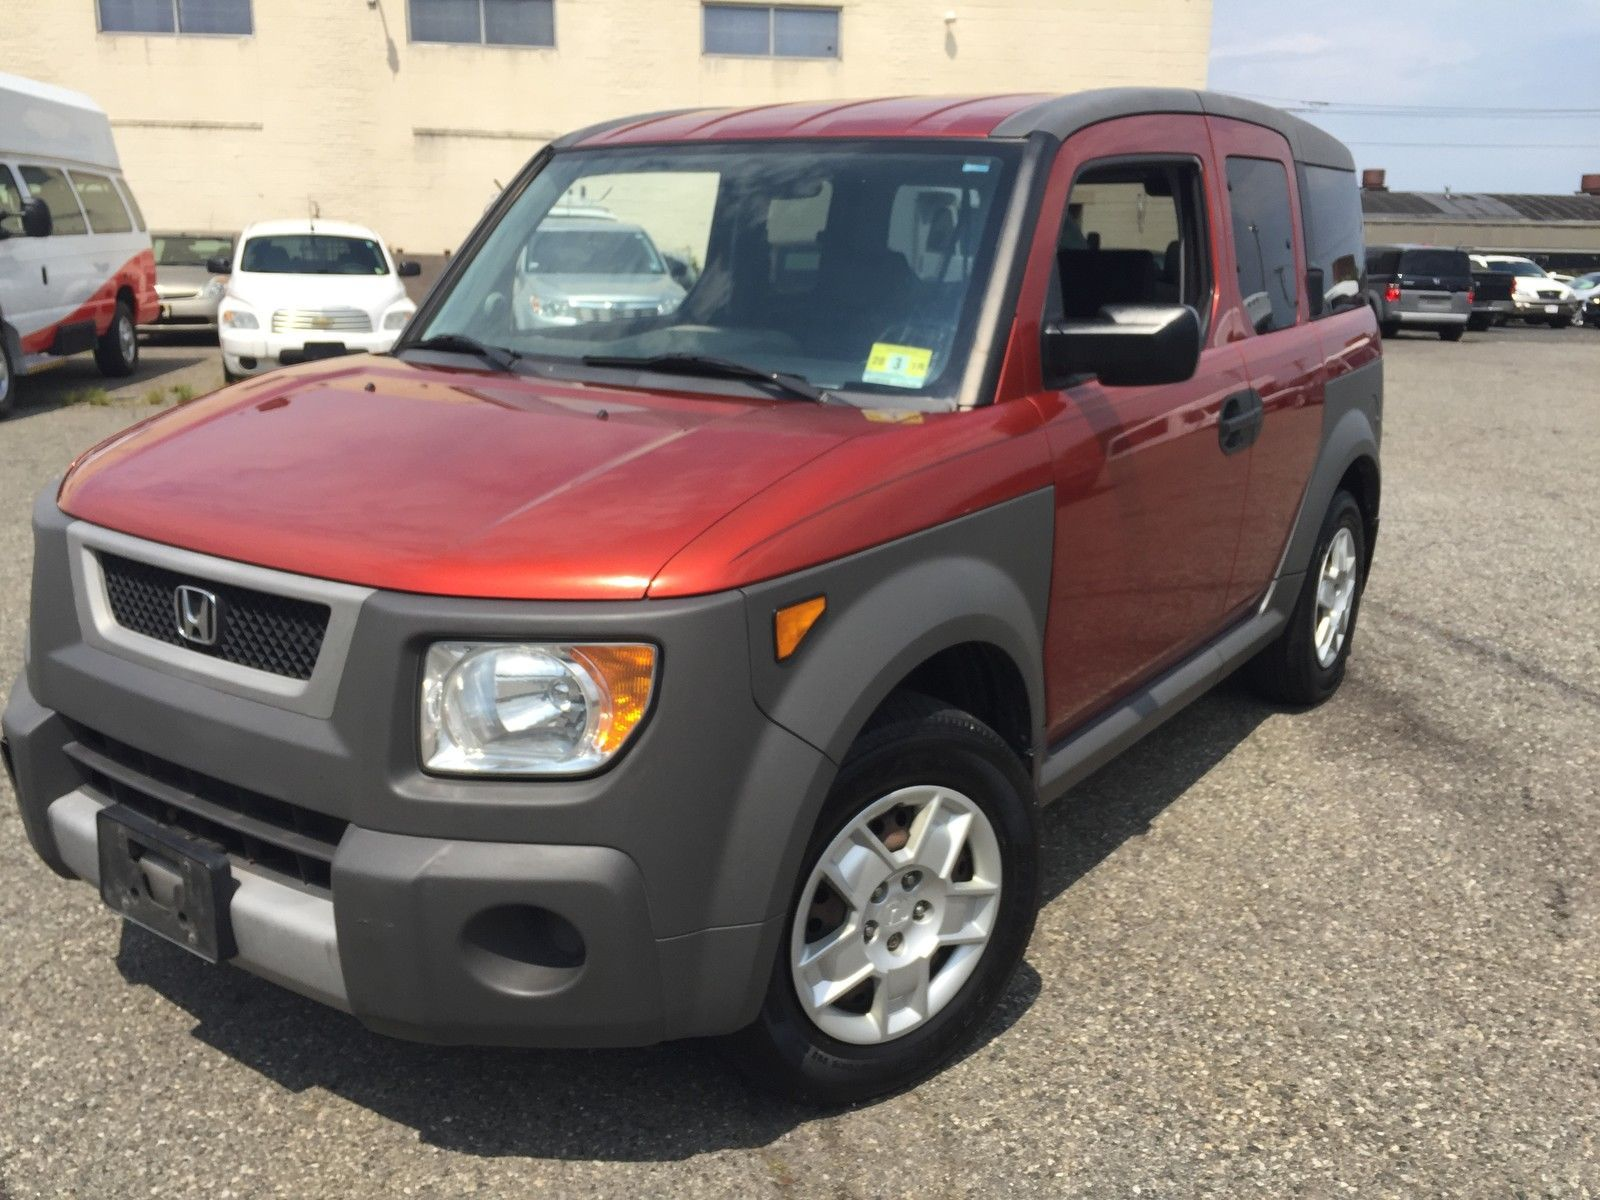 Car brand auctioned:Honda Element 4WD LX MT 5 speed manual transmission Car  model honda element all wheel drive rare find